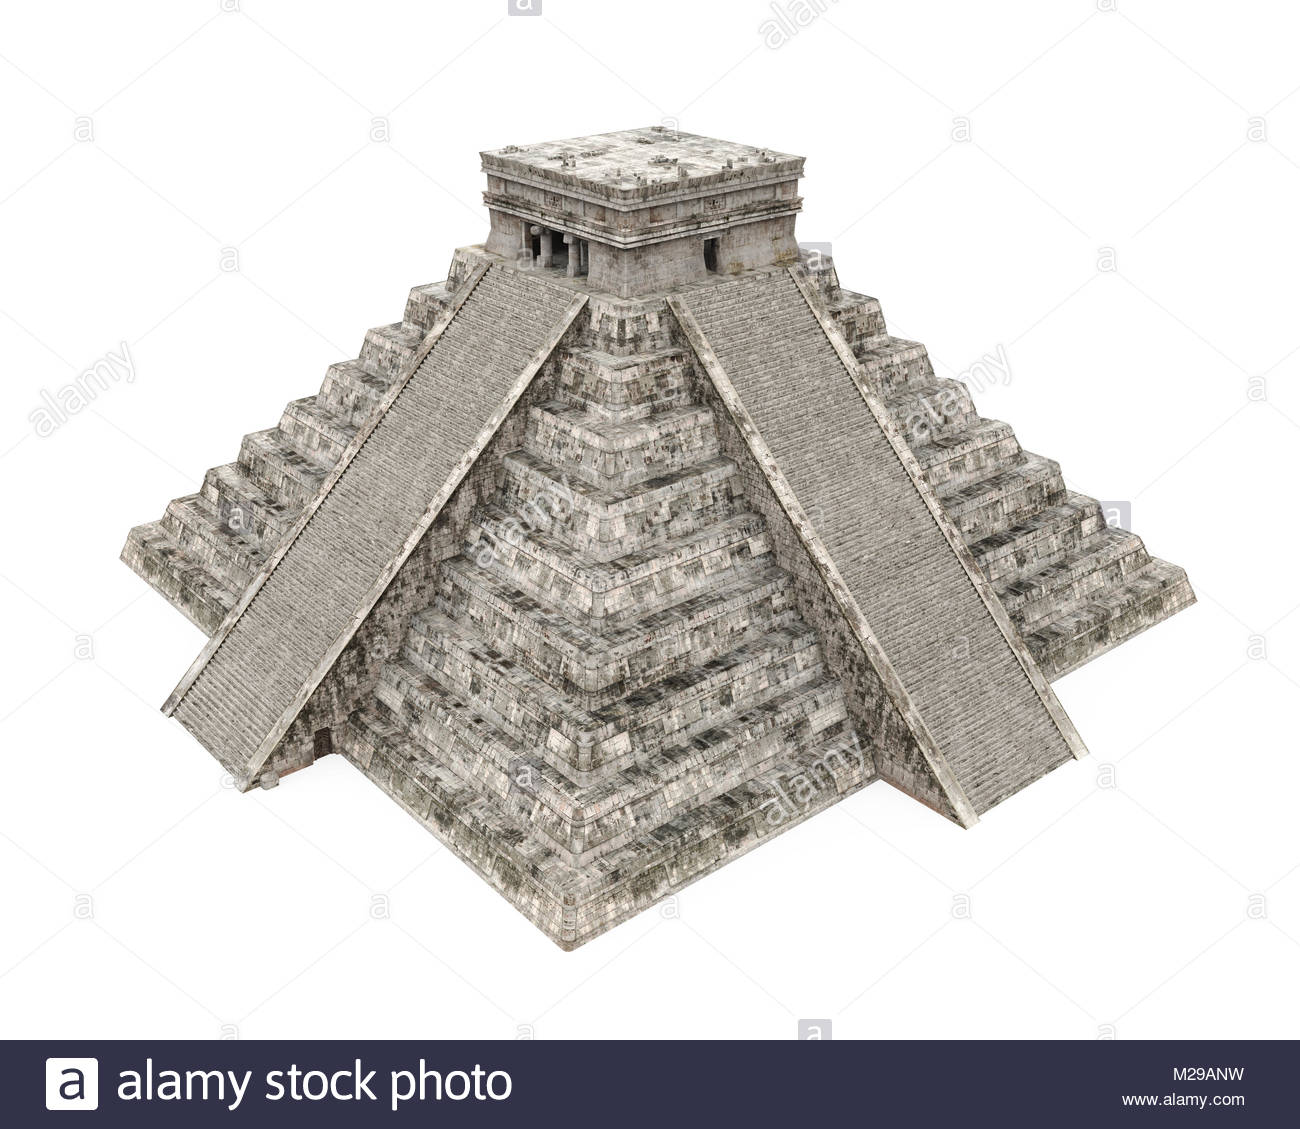 1300x1129 Mayan Pyramid Isolated Stock Photo 173539013